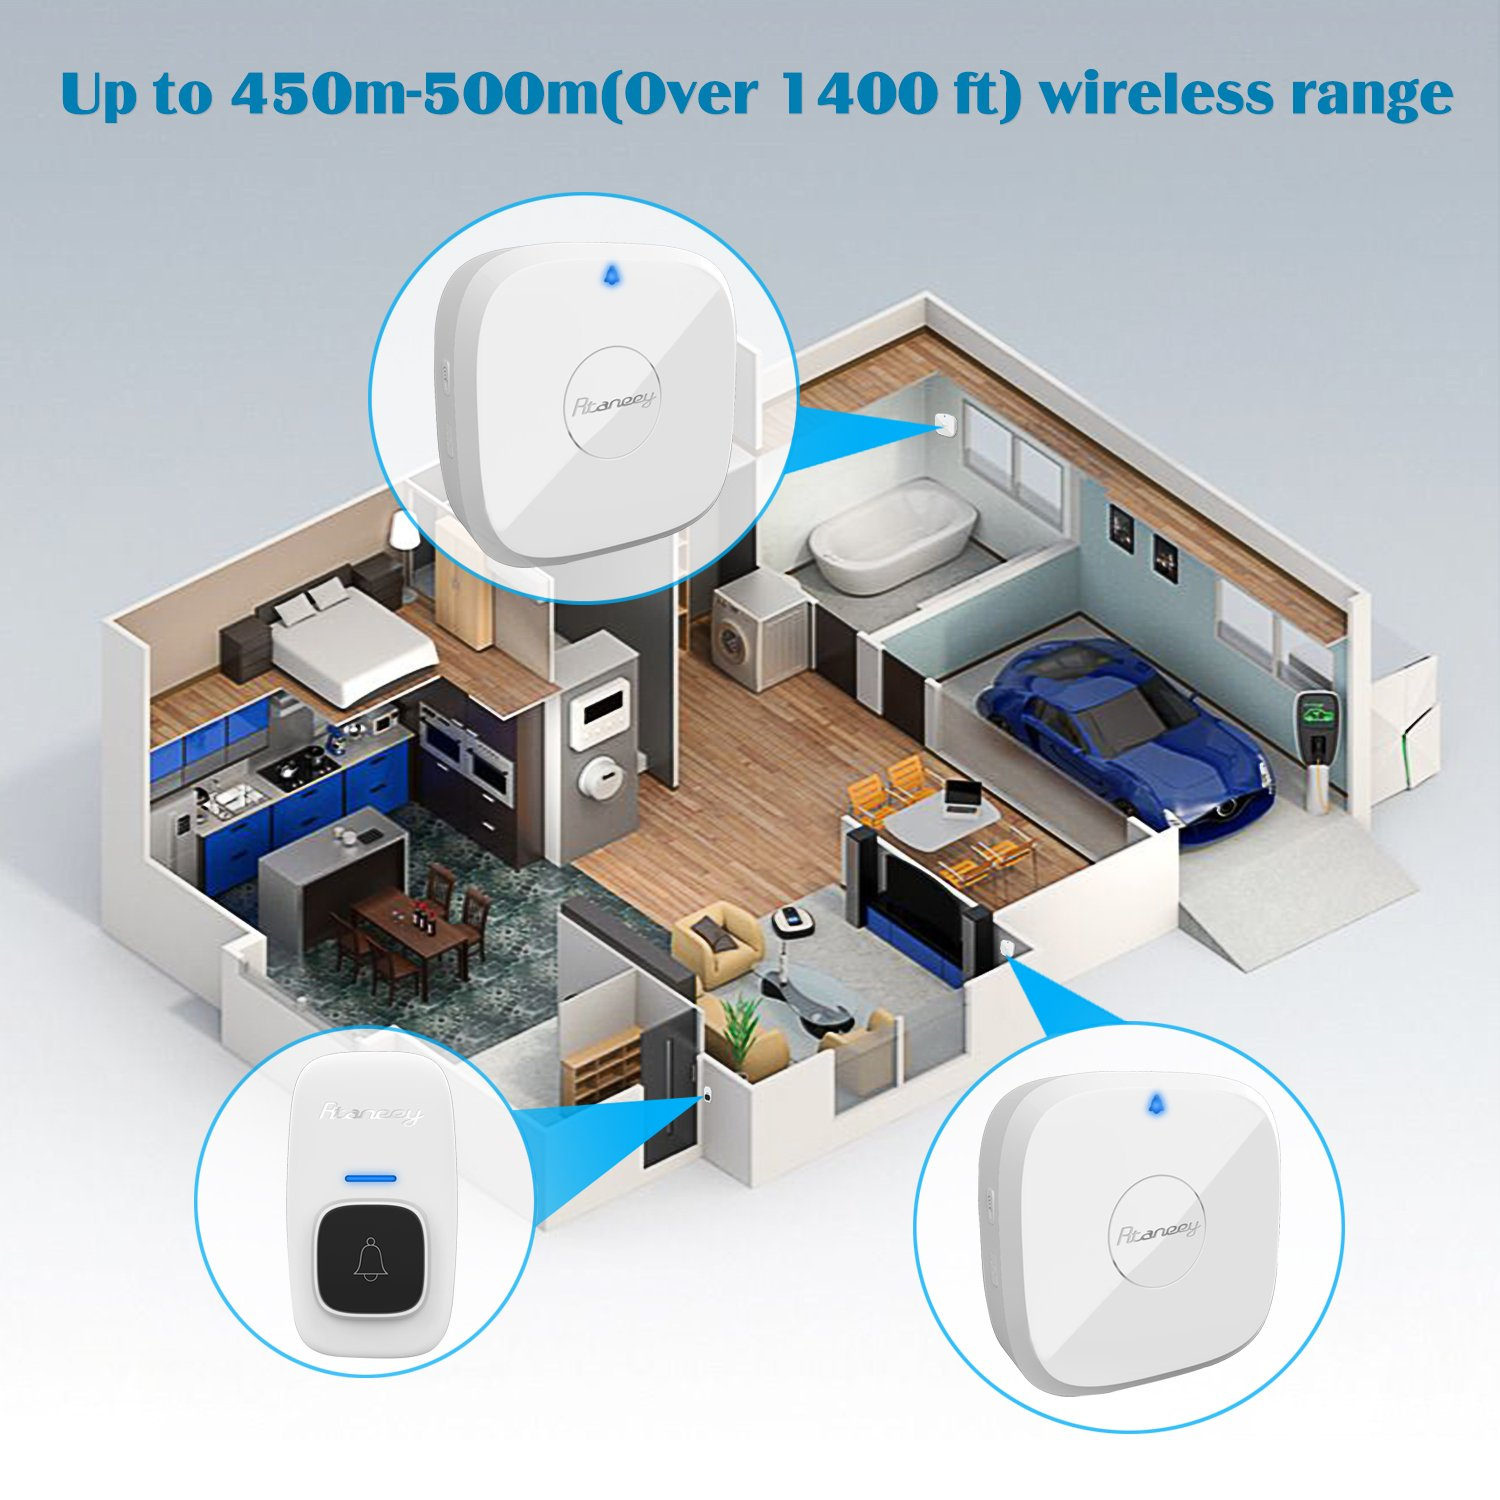 Wireless Doorbell,Rtaneey IP44 Waterproof Door Chime Kit Operating at Over 1476 ft with 2 Plug-In Receivers,30 Melodies,4 Level Volume,LED Indicators,Easy Set Up for Home and Office by Rtaneey (Image #6)